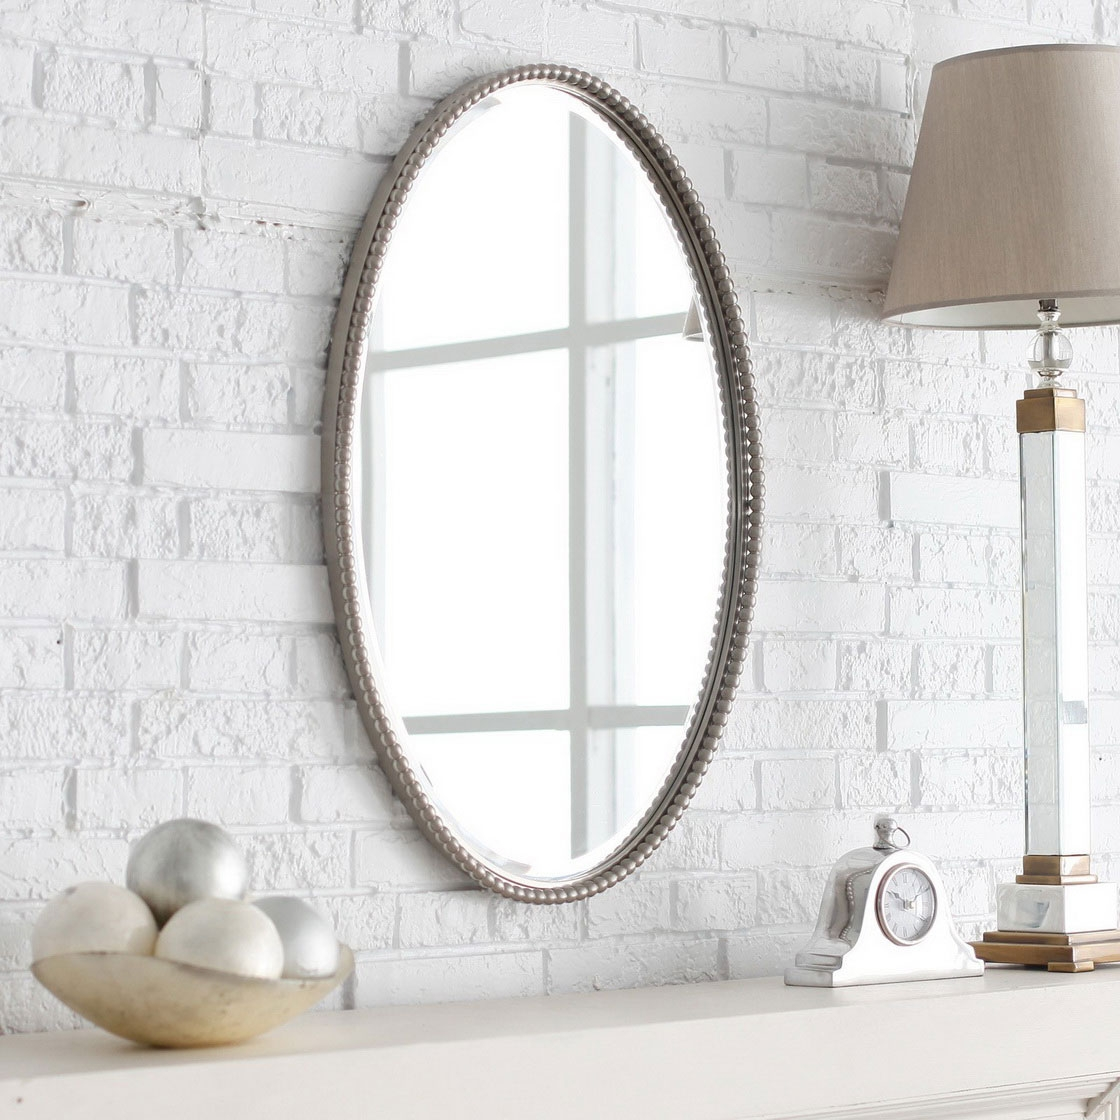 Bathroom Mirrors Luxury Bathroom Mirrors Oval Shape 12 In With Regarding Antique Bathroom Mirrors (Image 7 of 15)